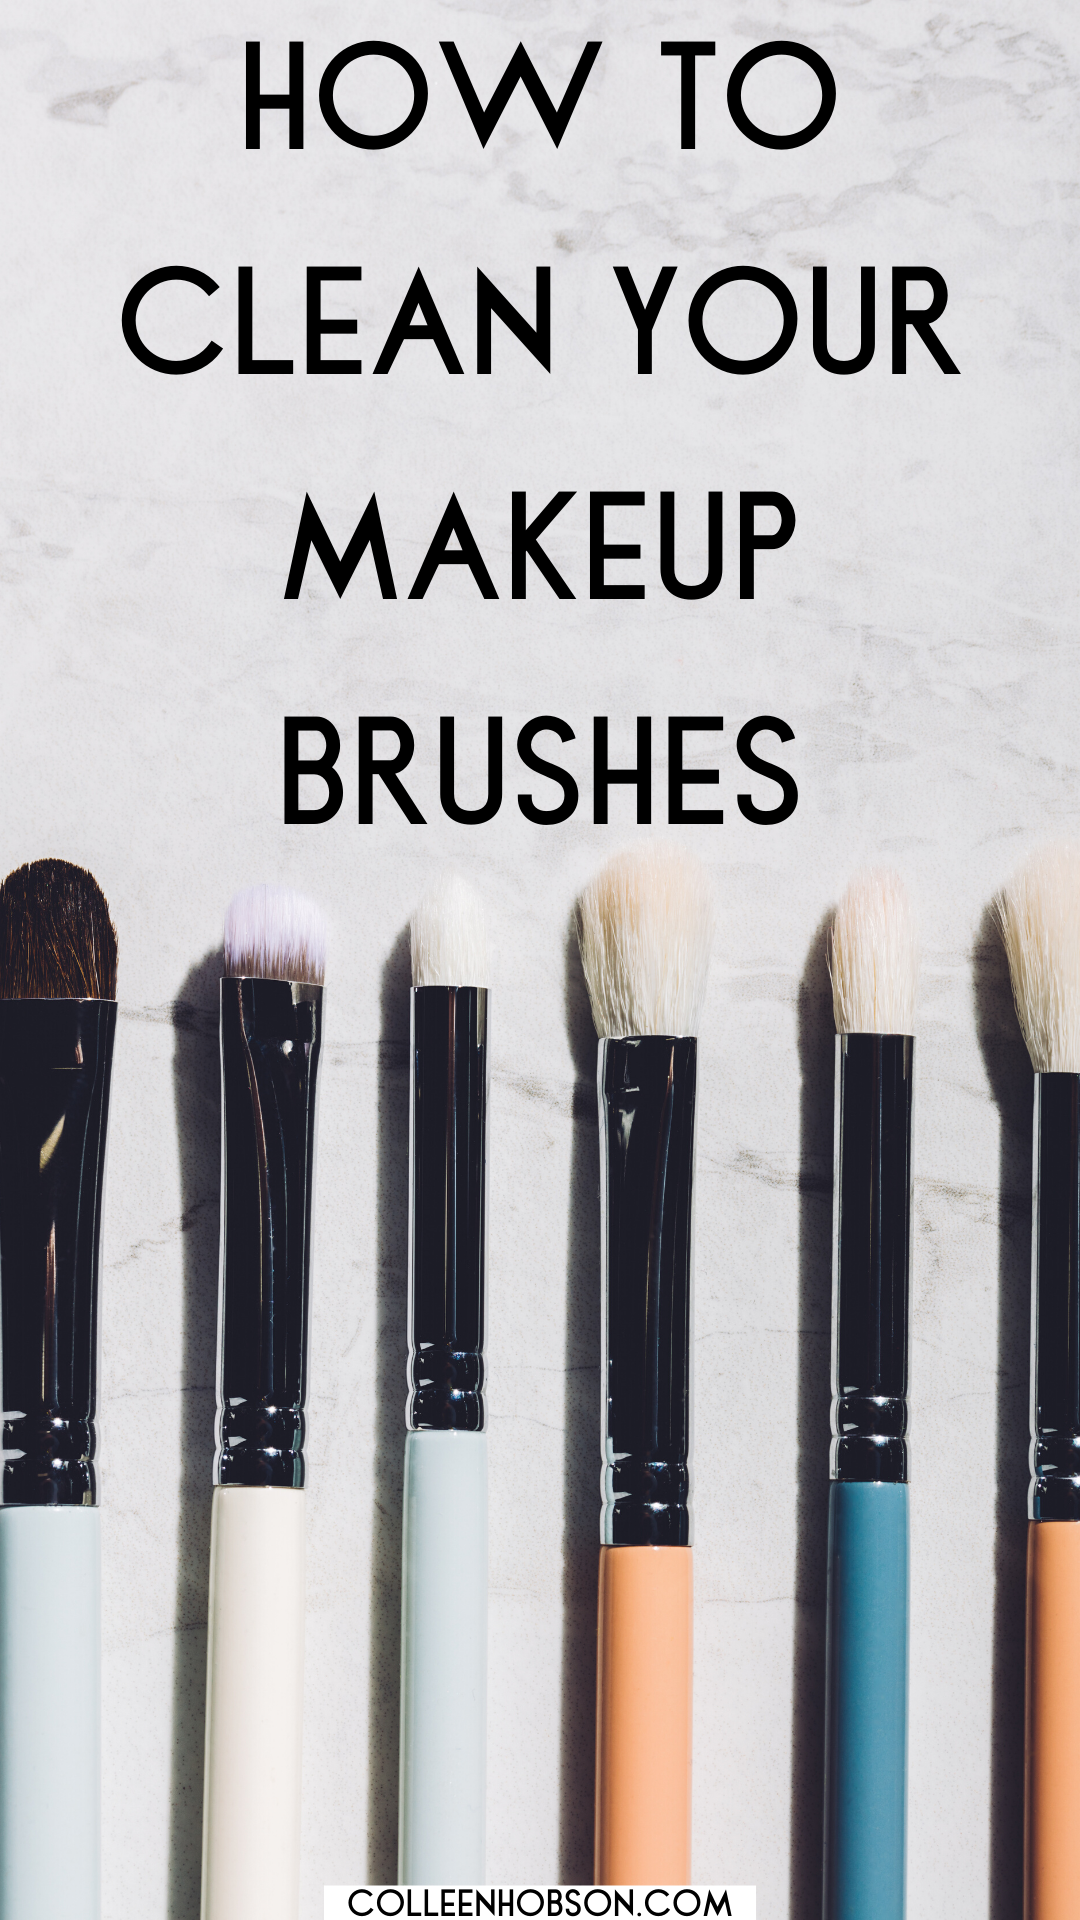 How To Clean Your Makeup Brushes In 2020 How To Clean Makeup Brushes Makeup Brushes Clean Makeup